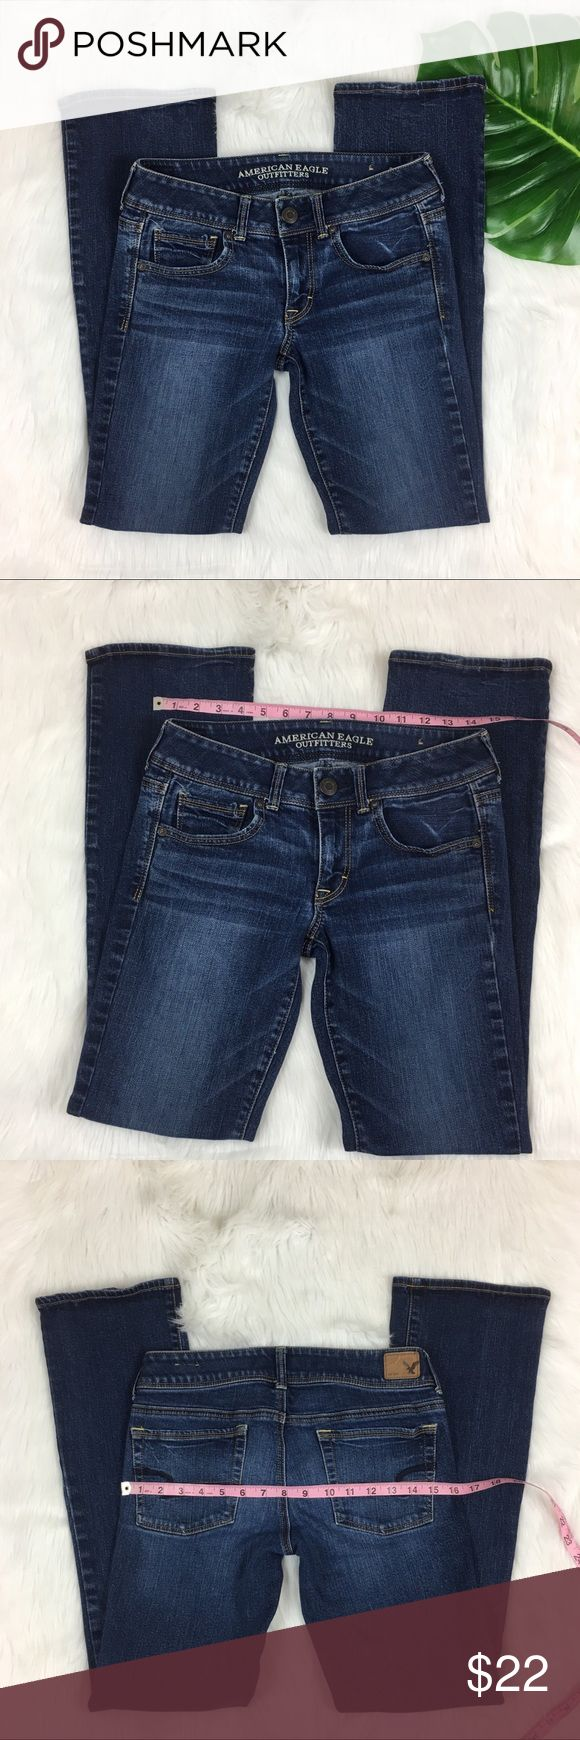 American Eagle Kick Boot Stretch Jeans American Eagle Kick Boot Stretch Jeans. Size 6 regular with 30' inseam and 7' rise. Pre-owned condition with some wear. Hems as shown are in good condition.  ❌I do not Trade 🙅🏻 Or model💲 Posh Transactions ONLY American Eagle Outfitters Jeans Boot Cut